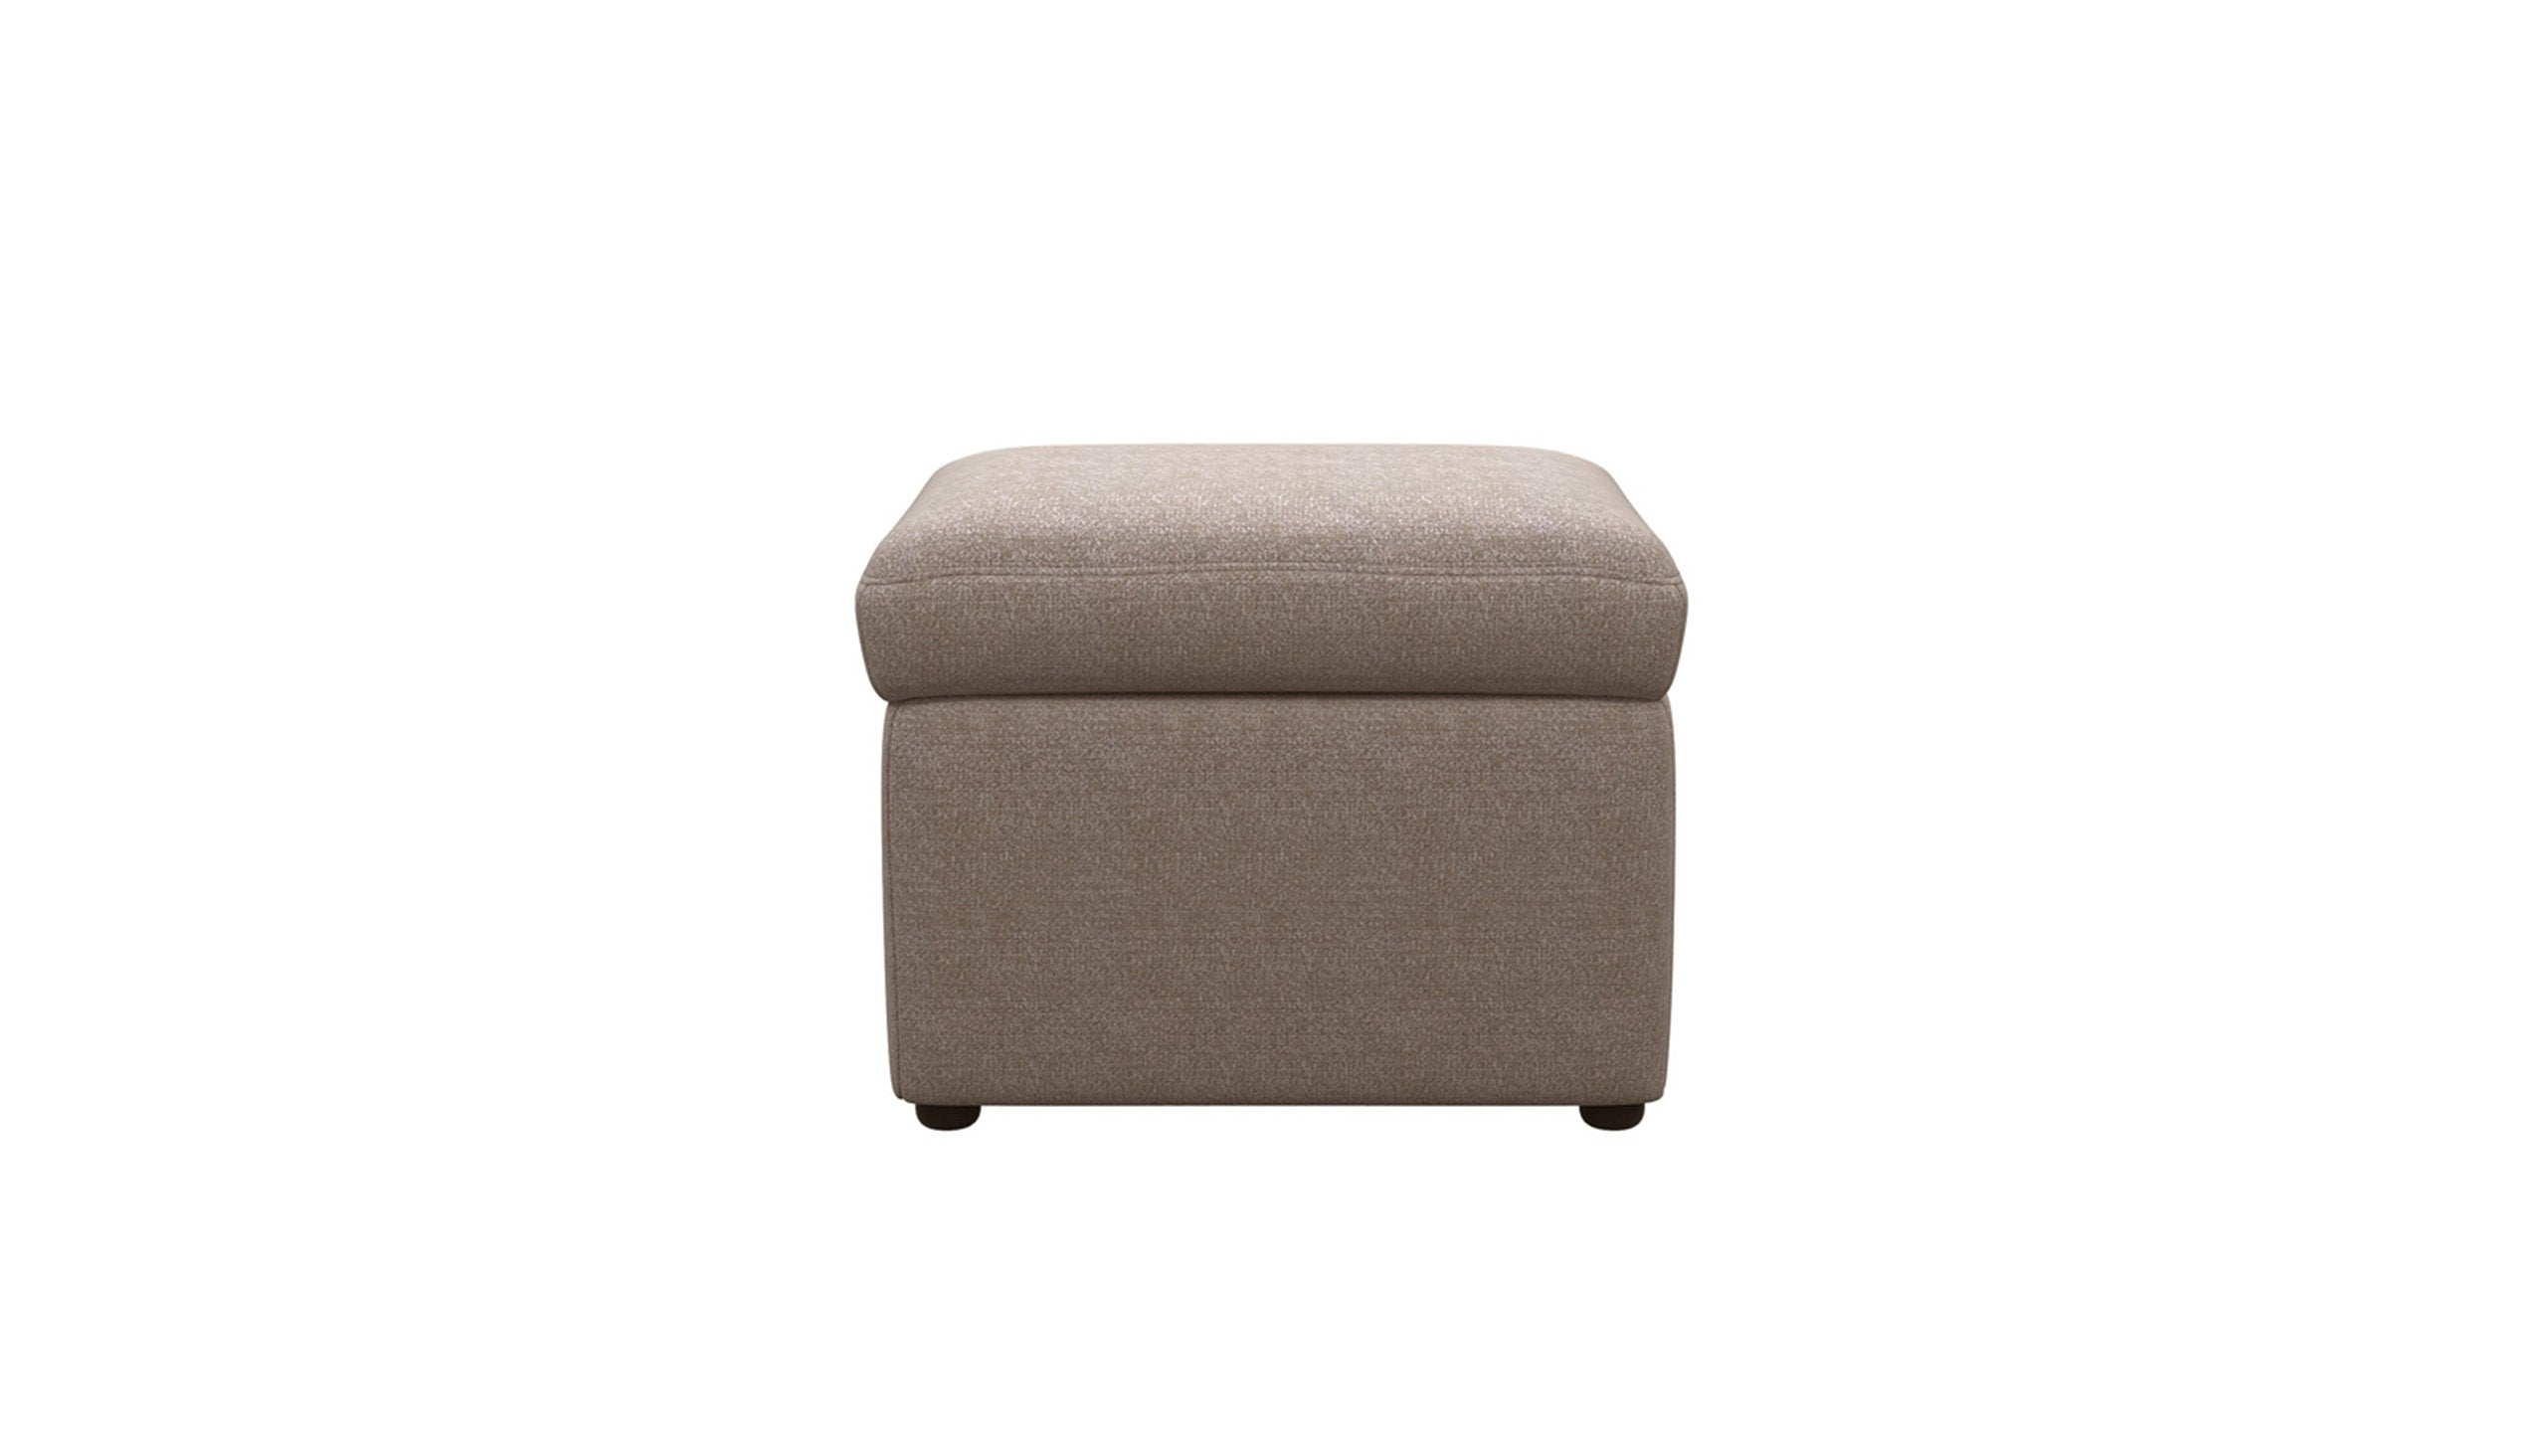 Expressions Storage Footstool